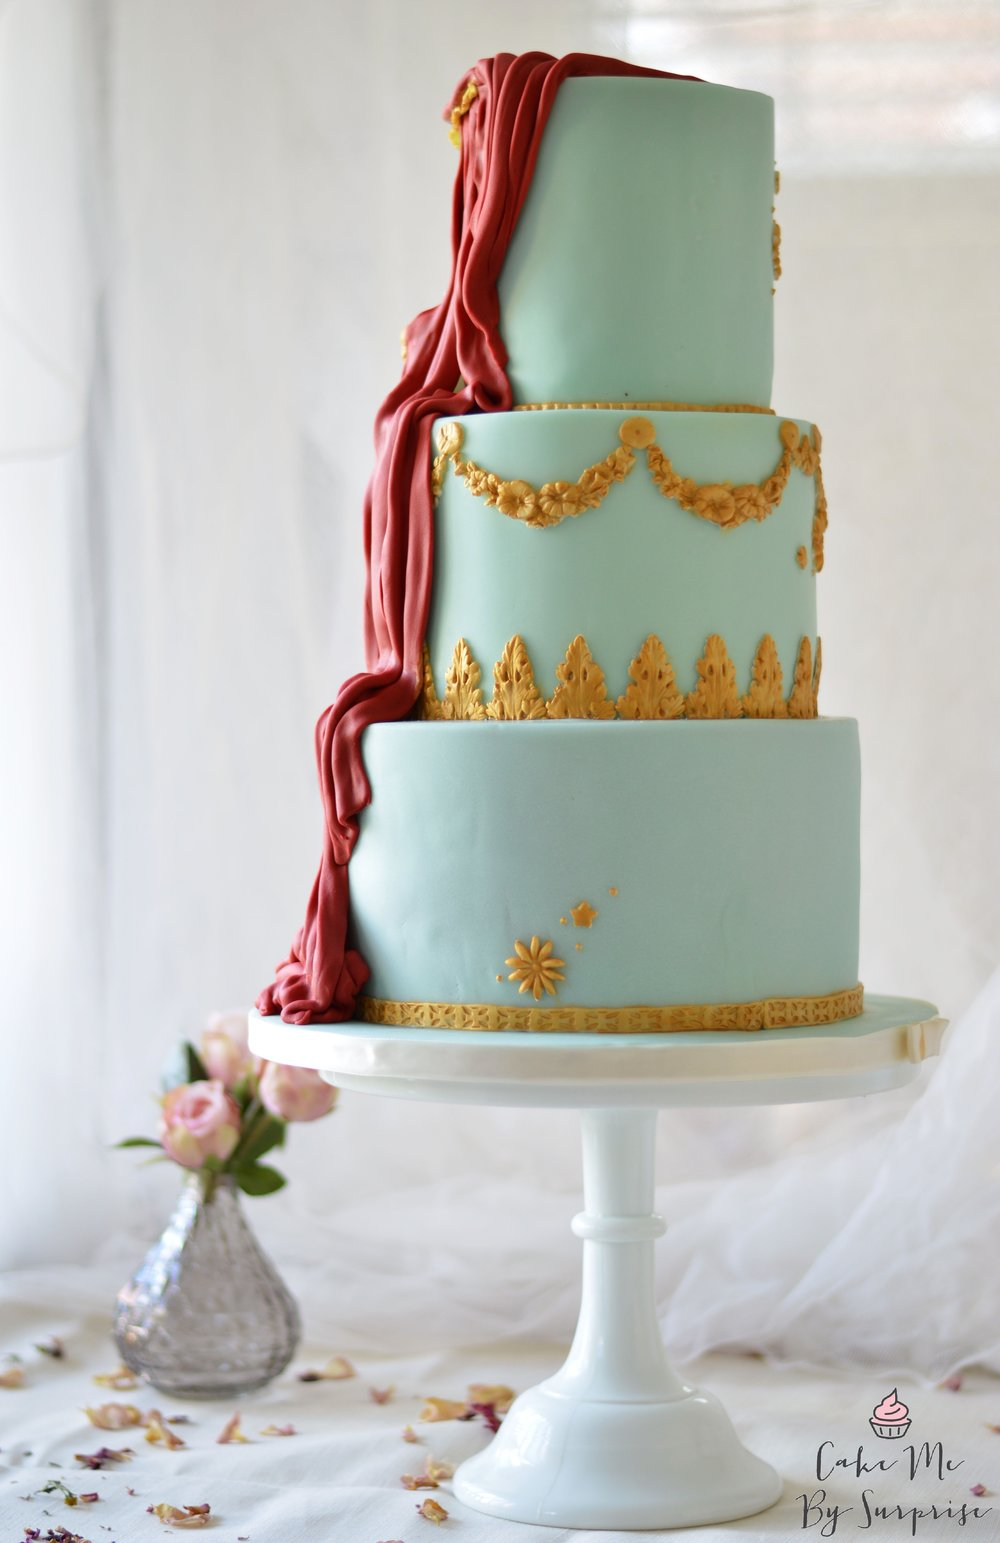 Back View At the Opera Cake Cakemebysurprise.jpg